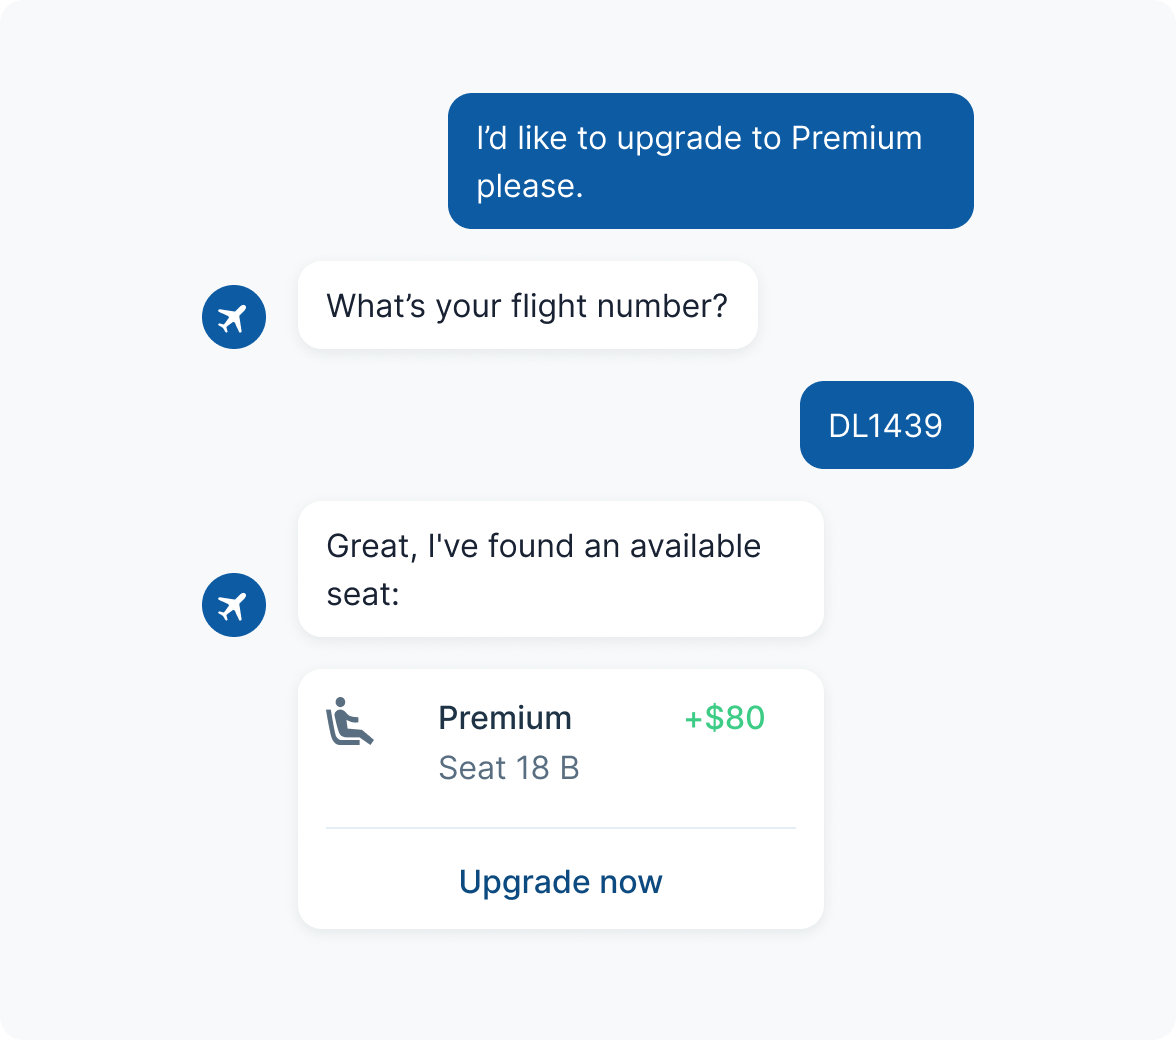 A bot helping a customer upgrade their airline seat